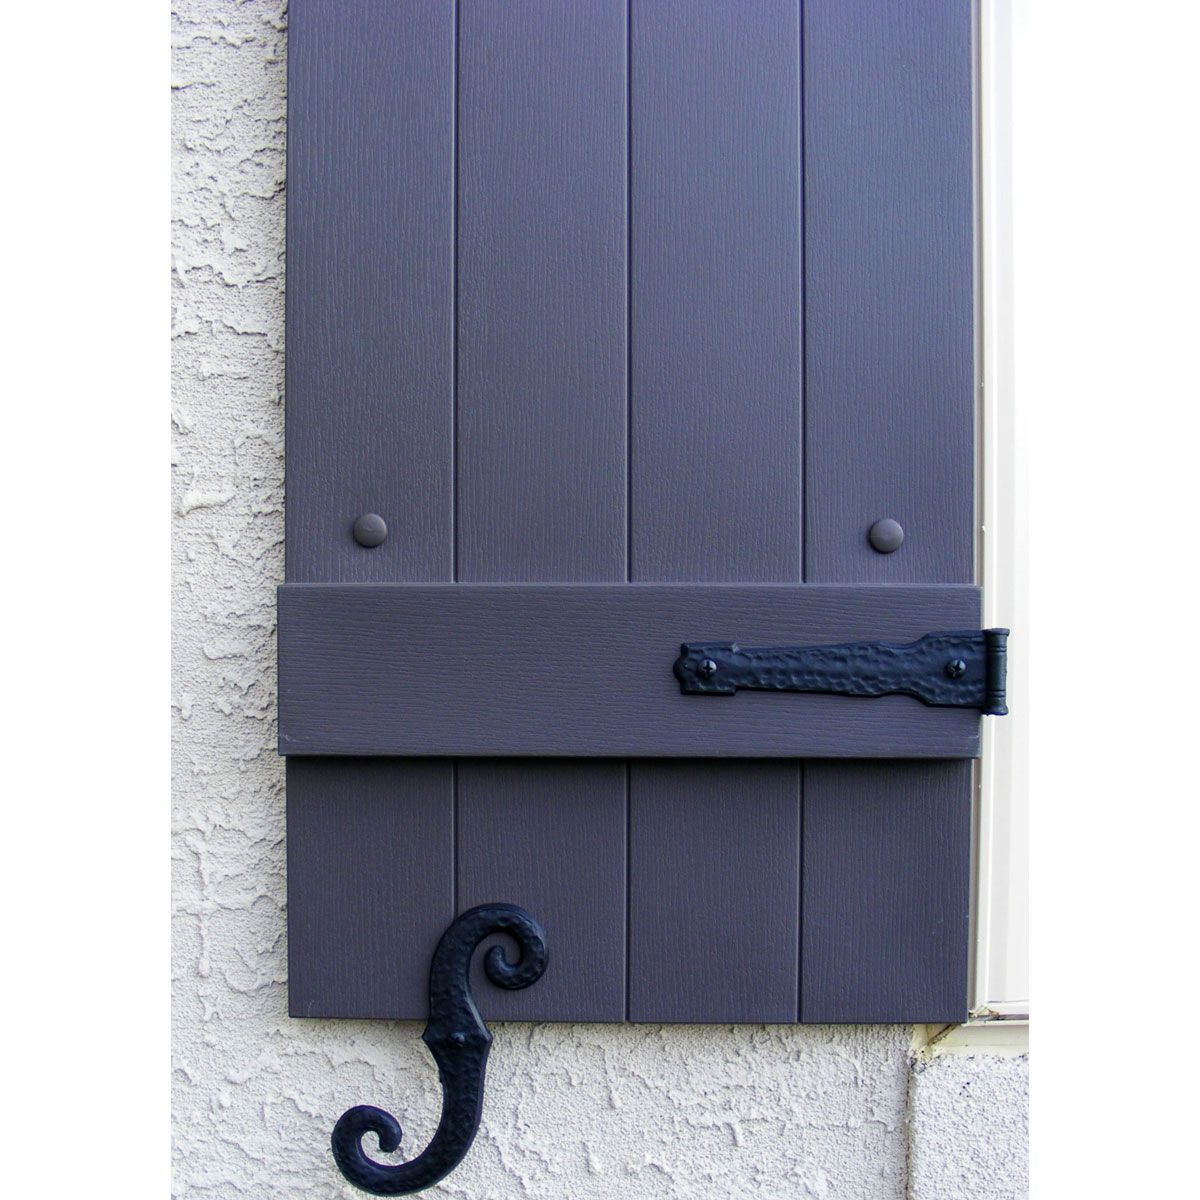 Decorative Vinyl Hinges 4 Hinges 2 S Hooks 002 Black Shutters Exterior House Shutters Interior Window Shutters